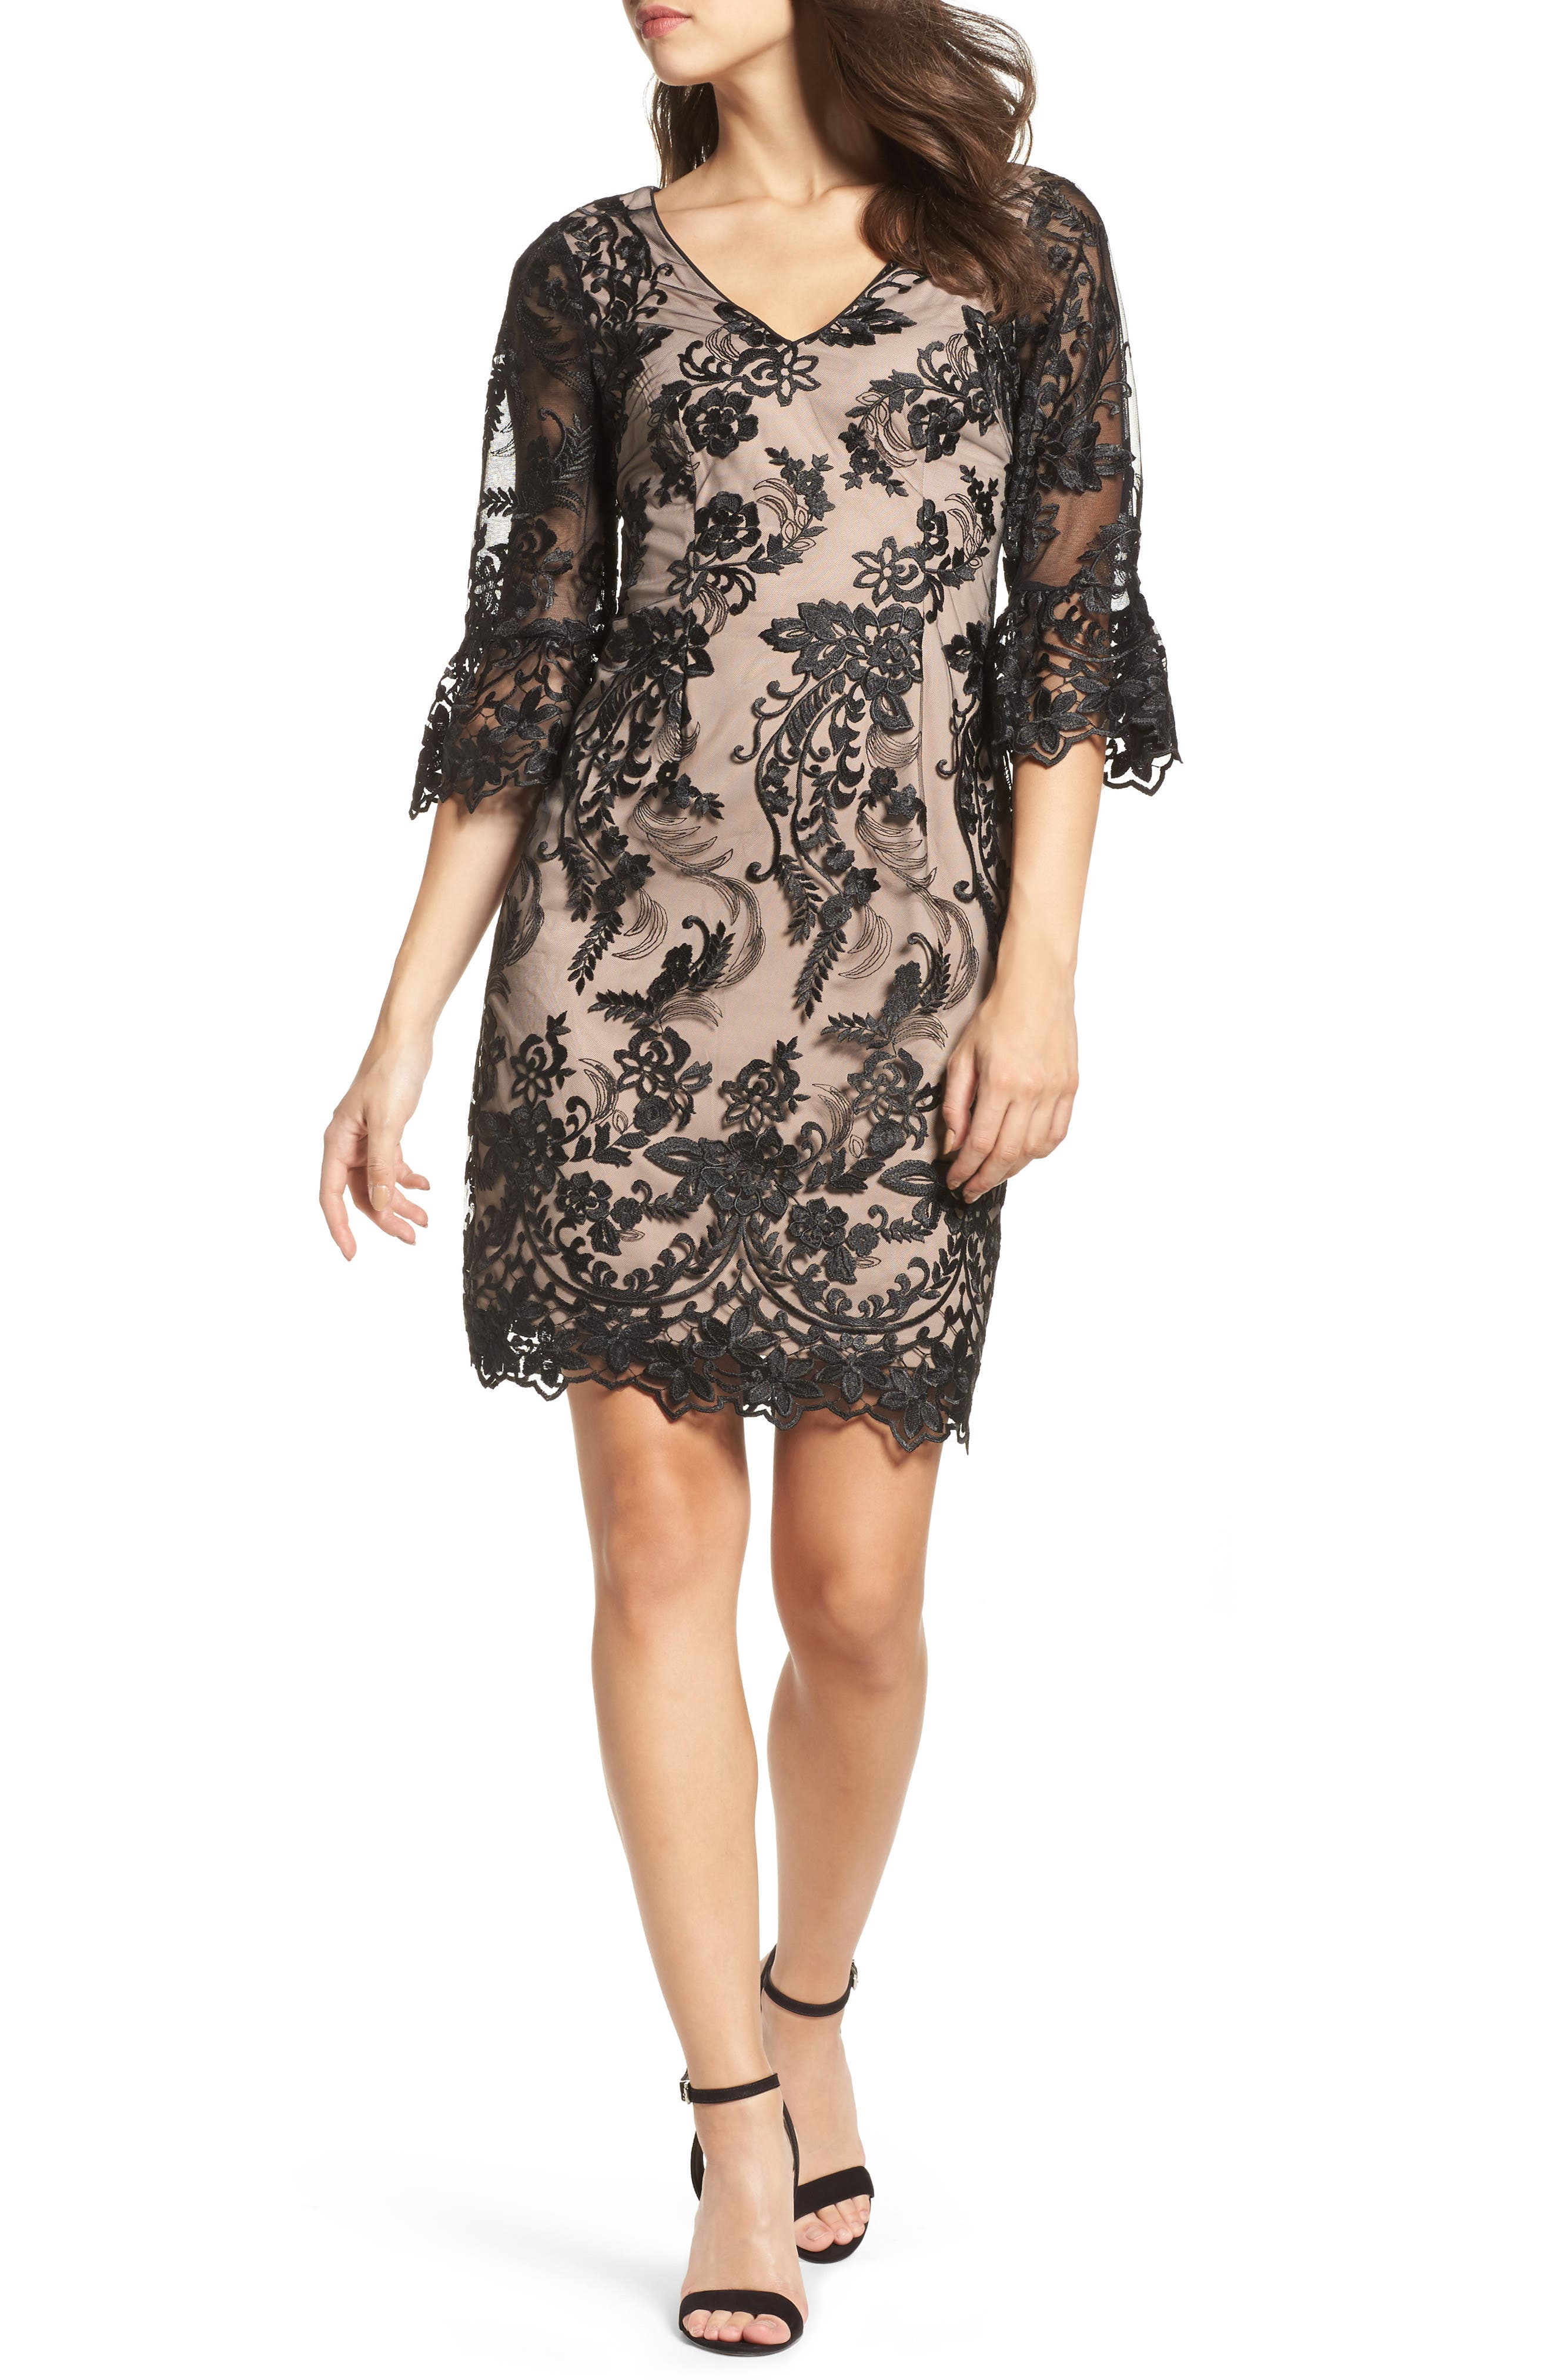 Alternate Image 1 Selected - Adrianna Papell Eillen Embroidered Lace Dress